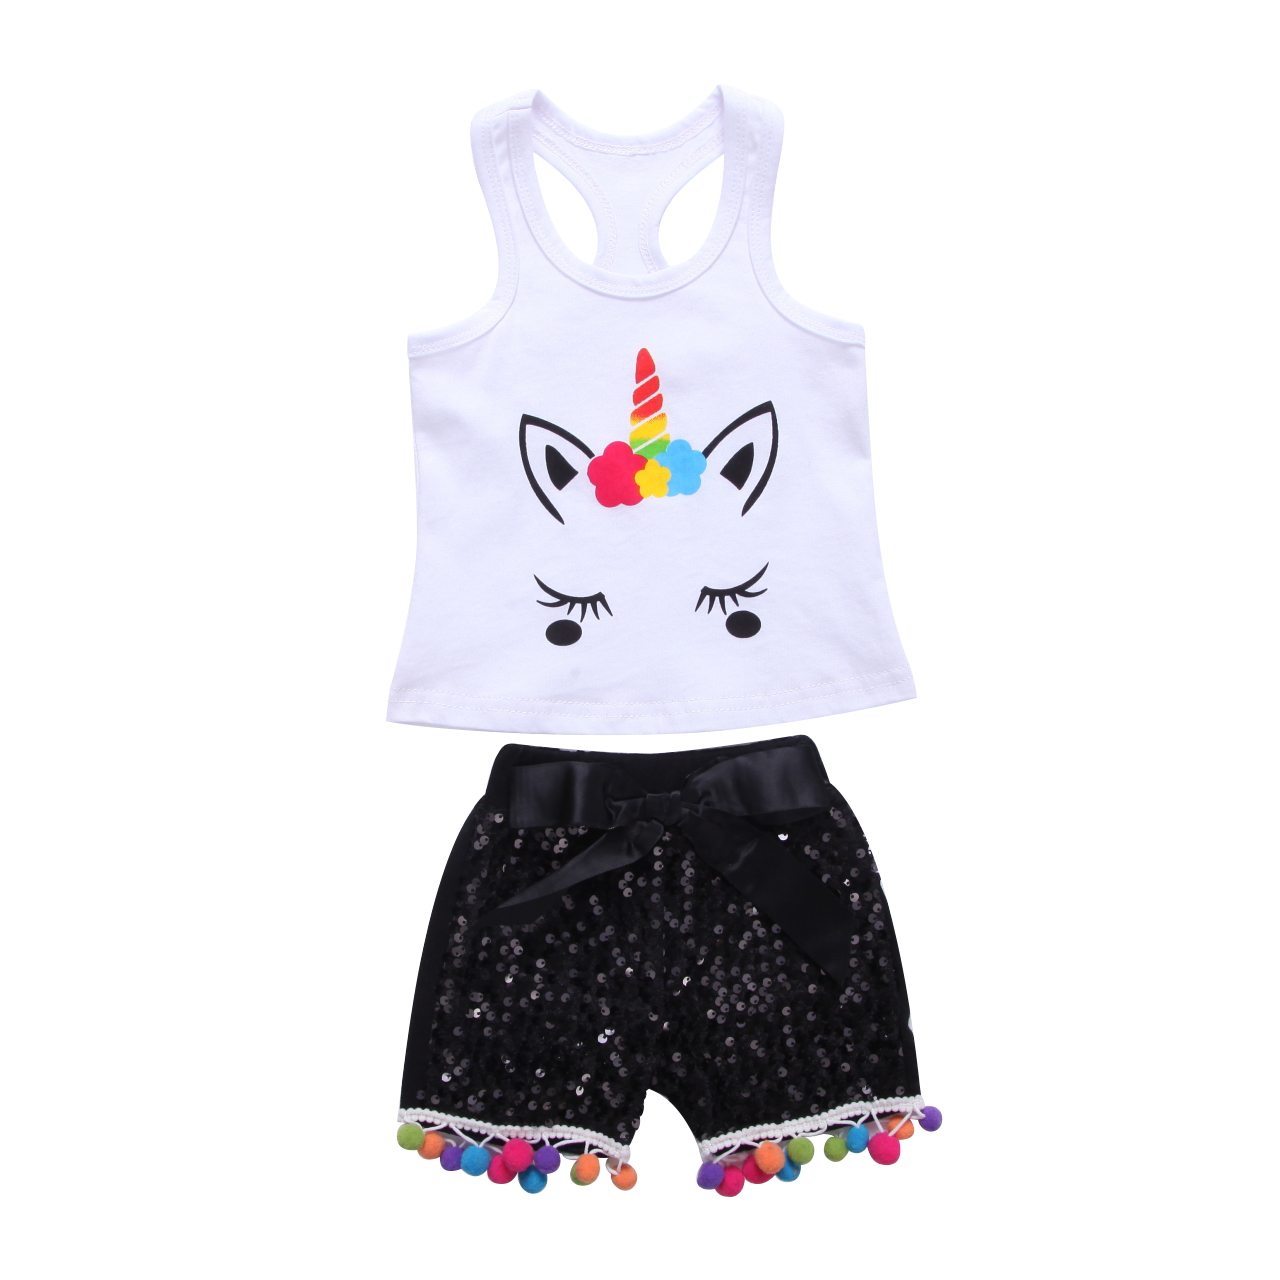 New Casual Newborn Kid Baby Girls Clothes Set Unicorn Cartoon Sleeveless T-shirt Tops+Short Pants 2PCS Set Costume